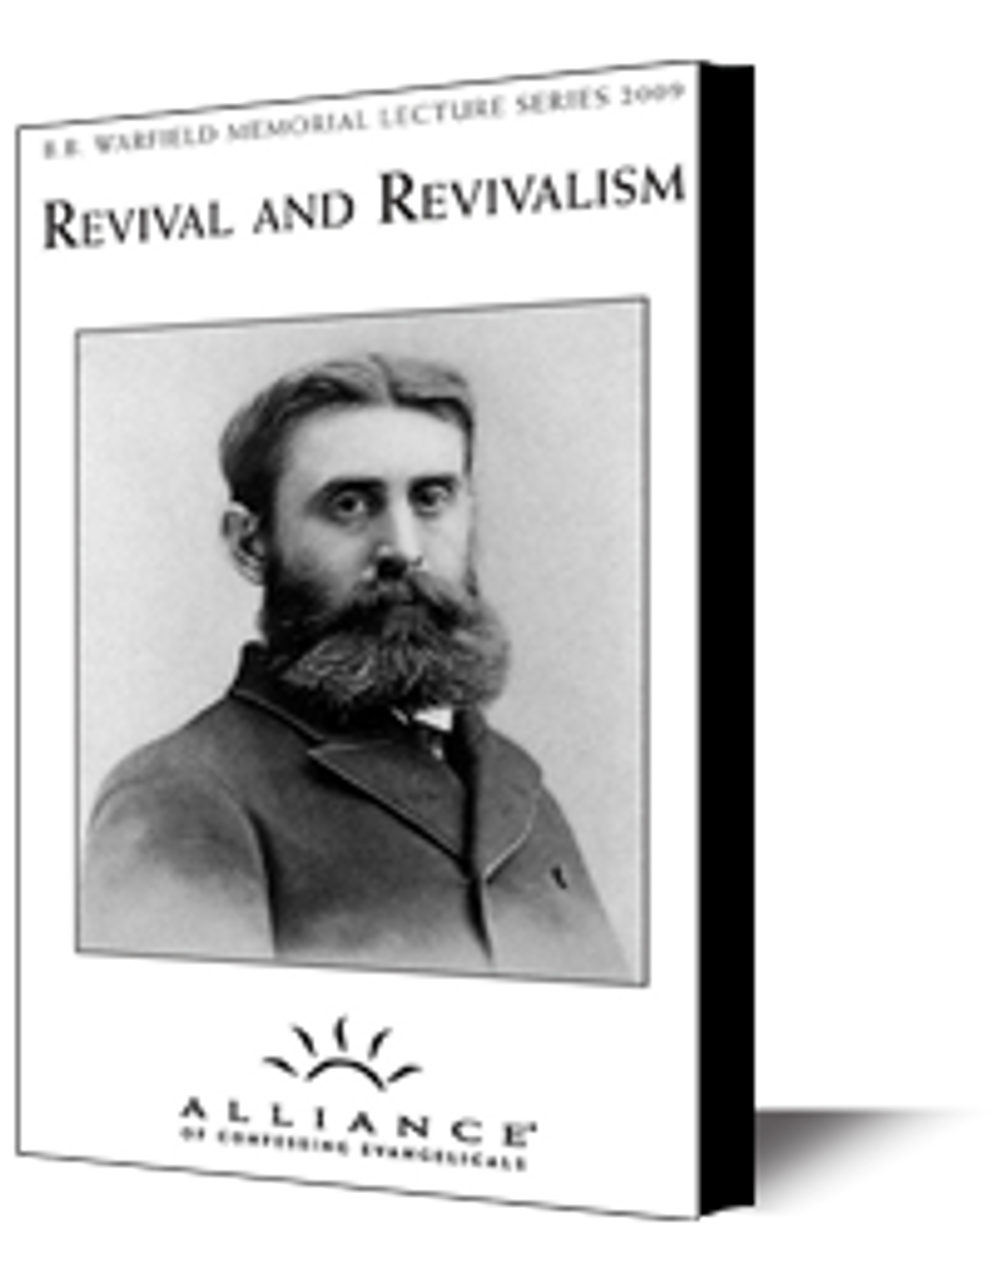 Revival and Revivalism (mp3 Disc)